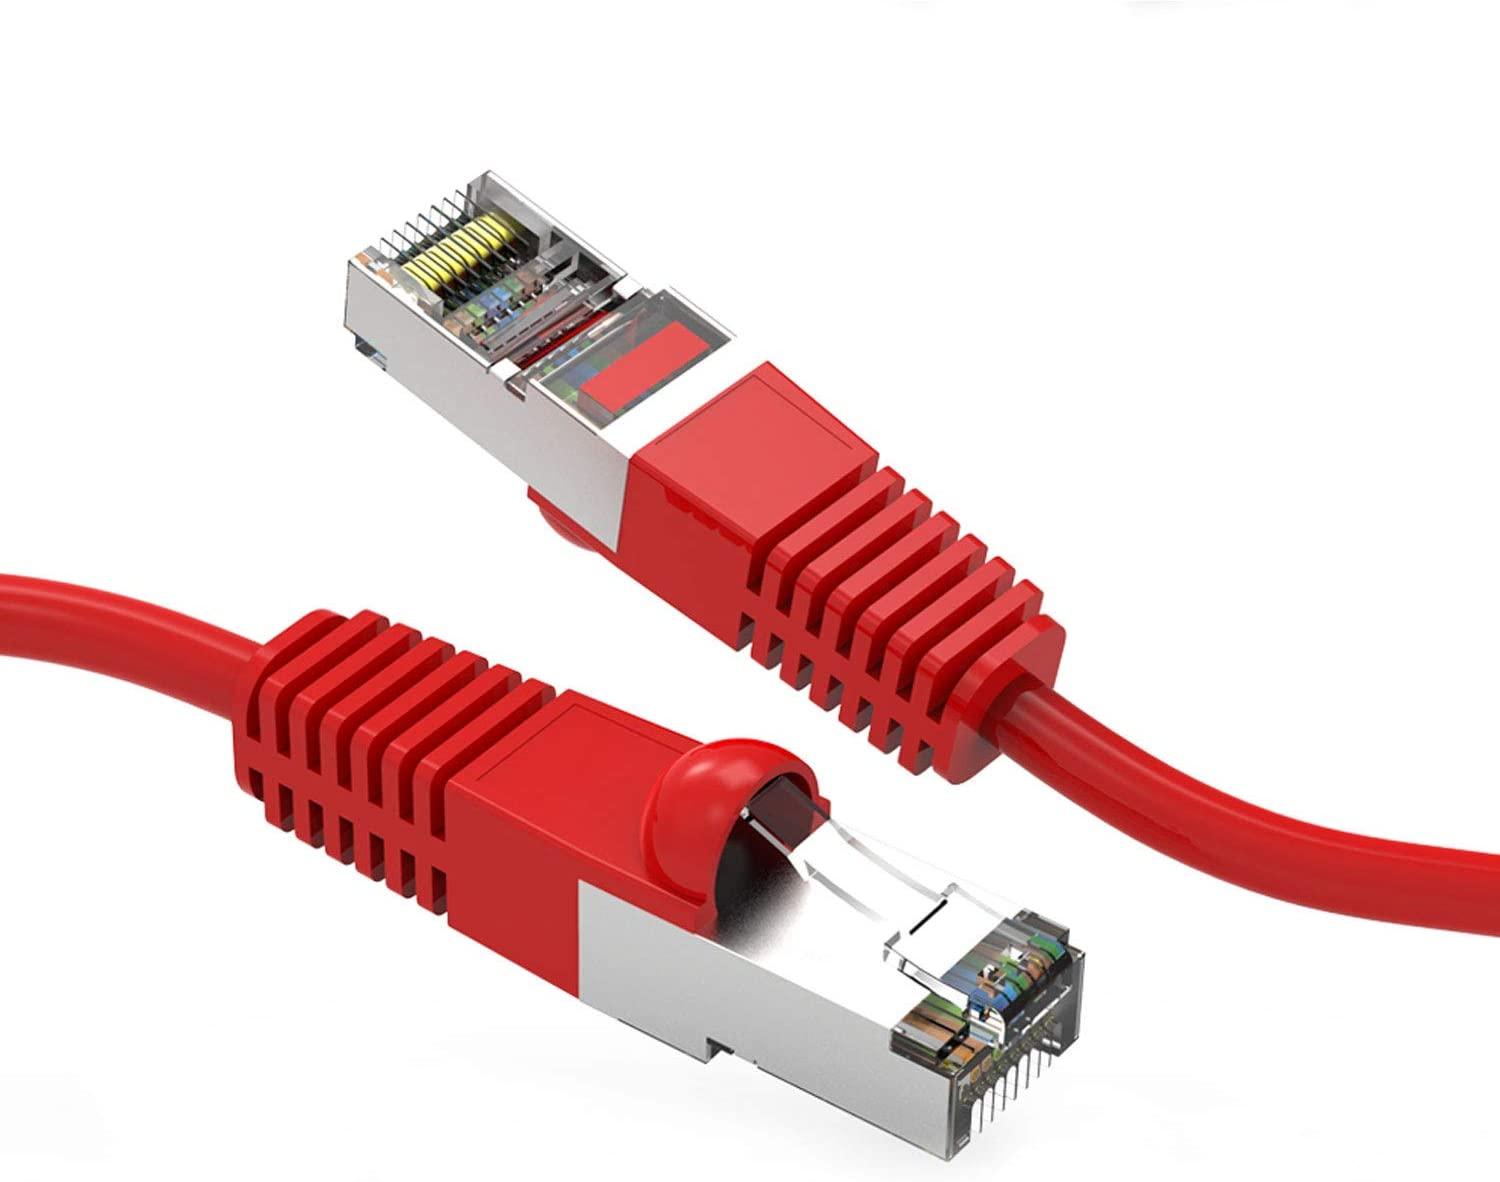 26AWG Network Cable with Gold Plated RJ45 Snagless//Molded//Booted Connector 10-Pack - 35 Feet CABLECHOICE Cat5e Shielded Ethernet Cable 350MHz 1Gigabit//Sec High Speed LAN Internet Cable Red